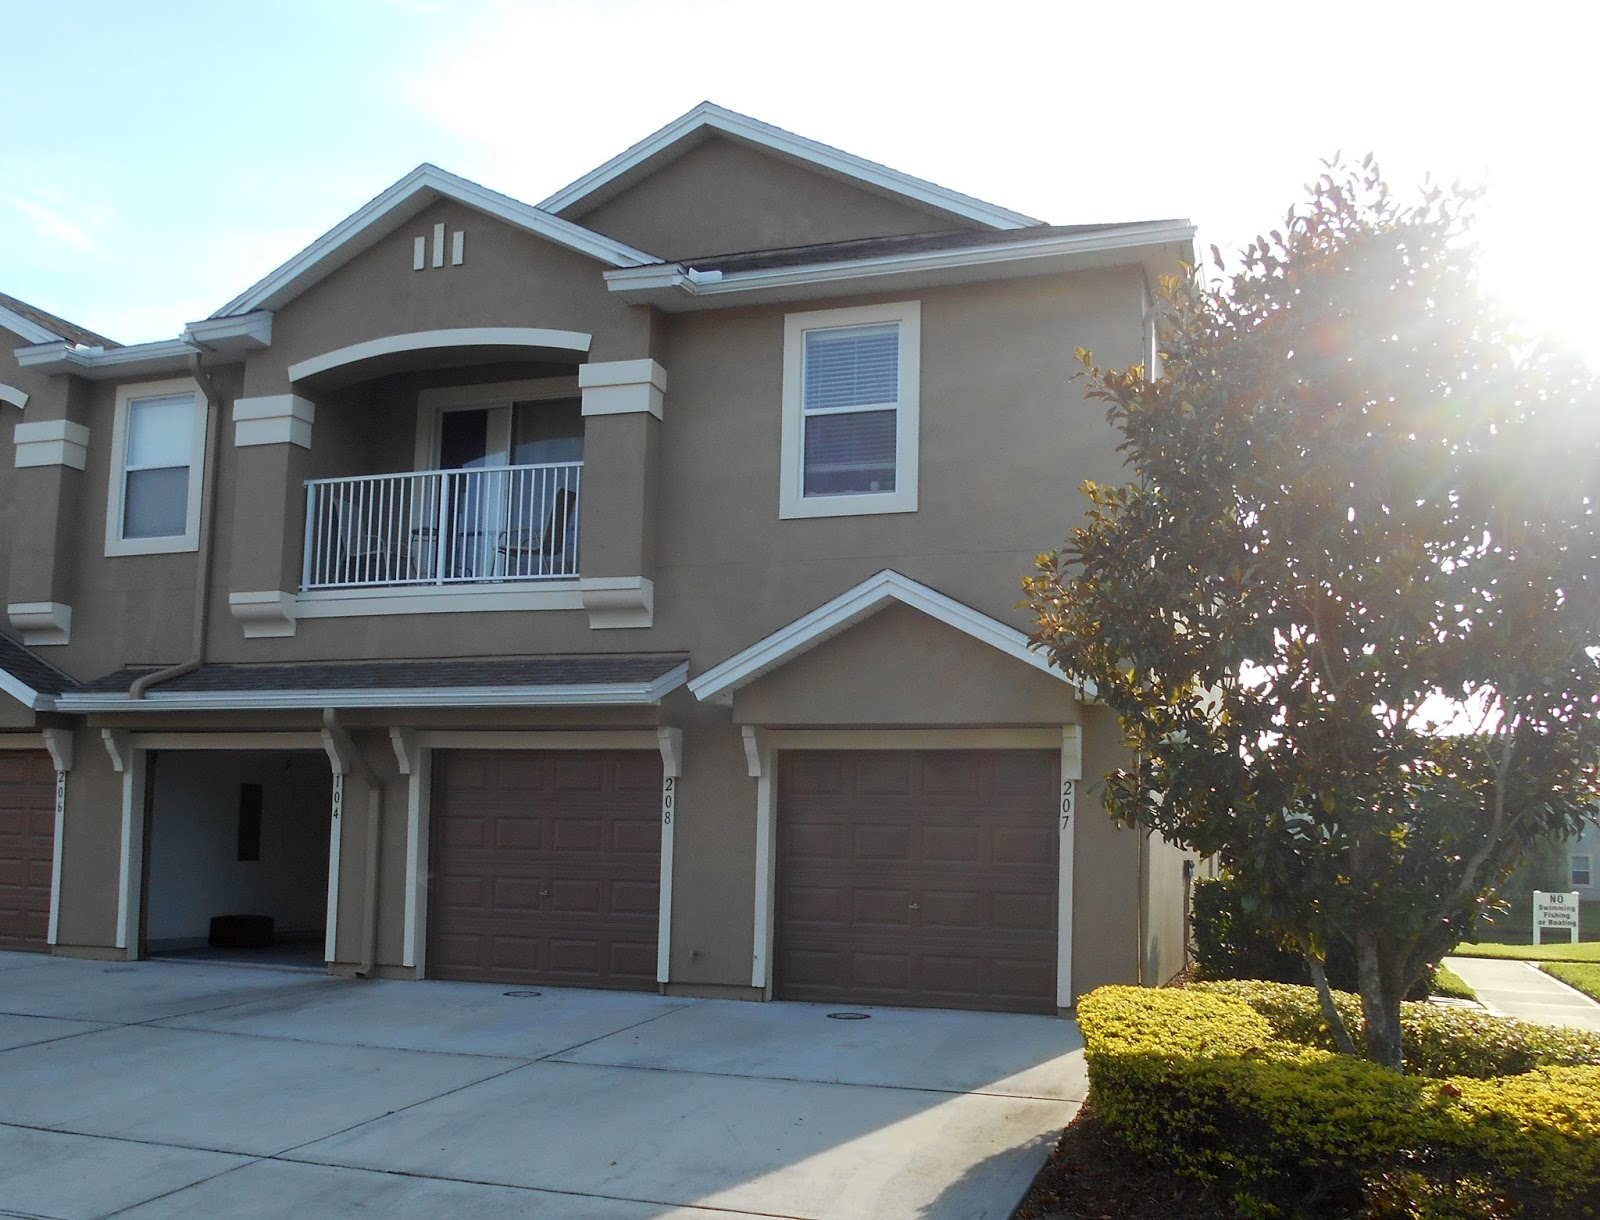 rockledge fl condo for lease 1300 month 3br 2 ba